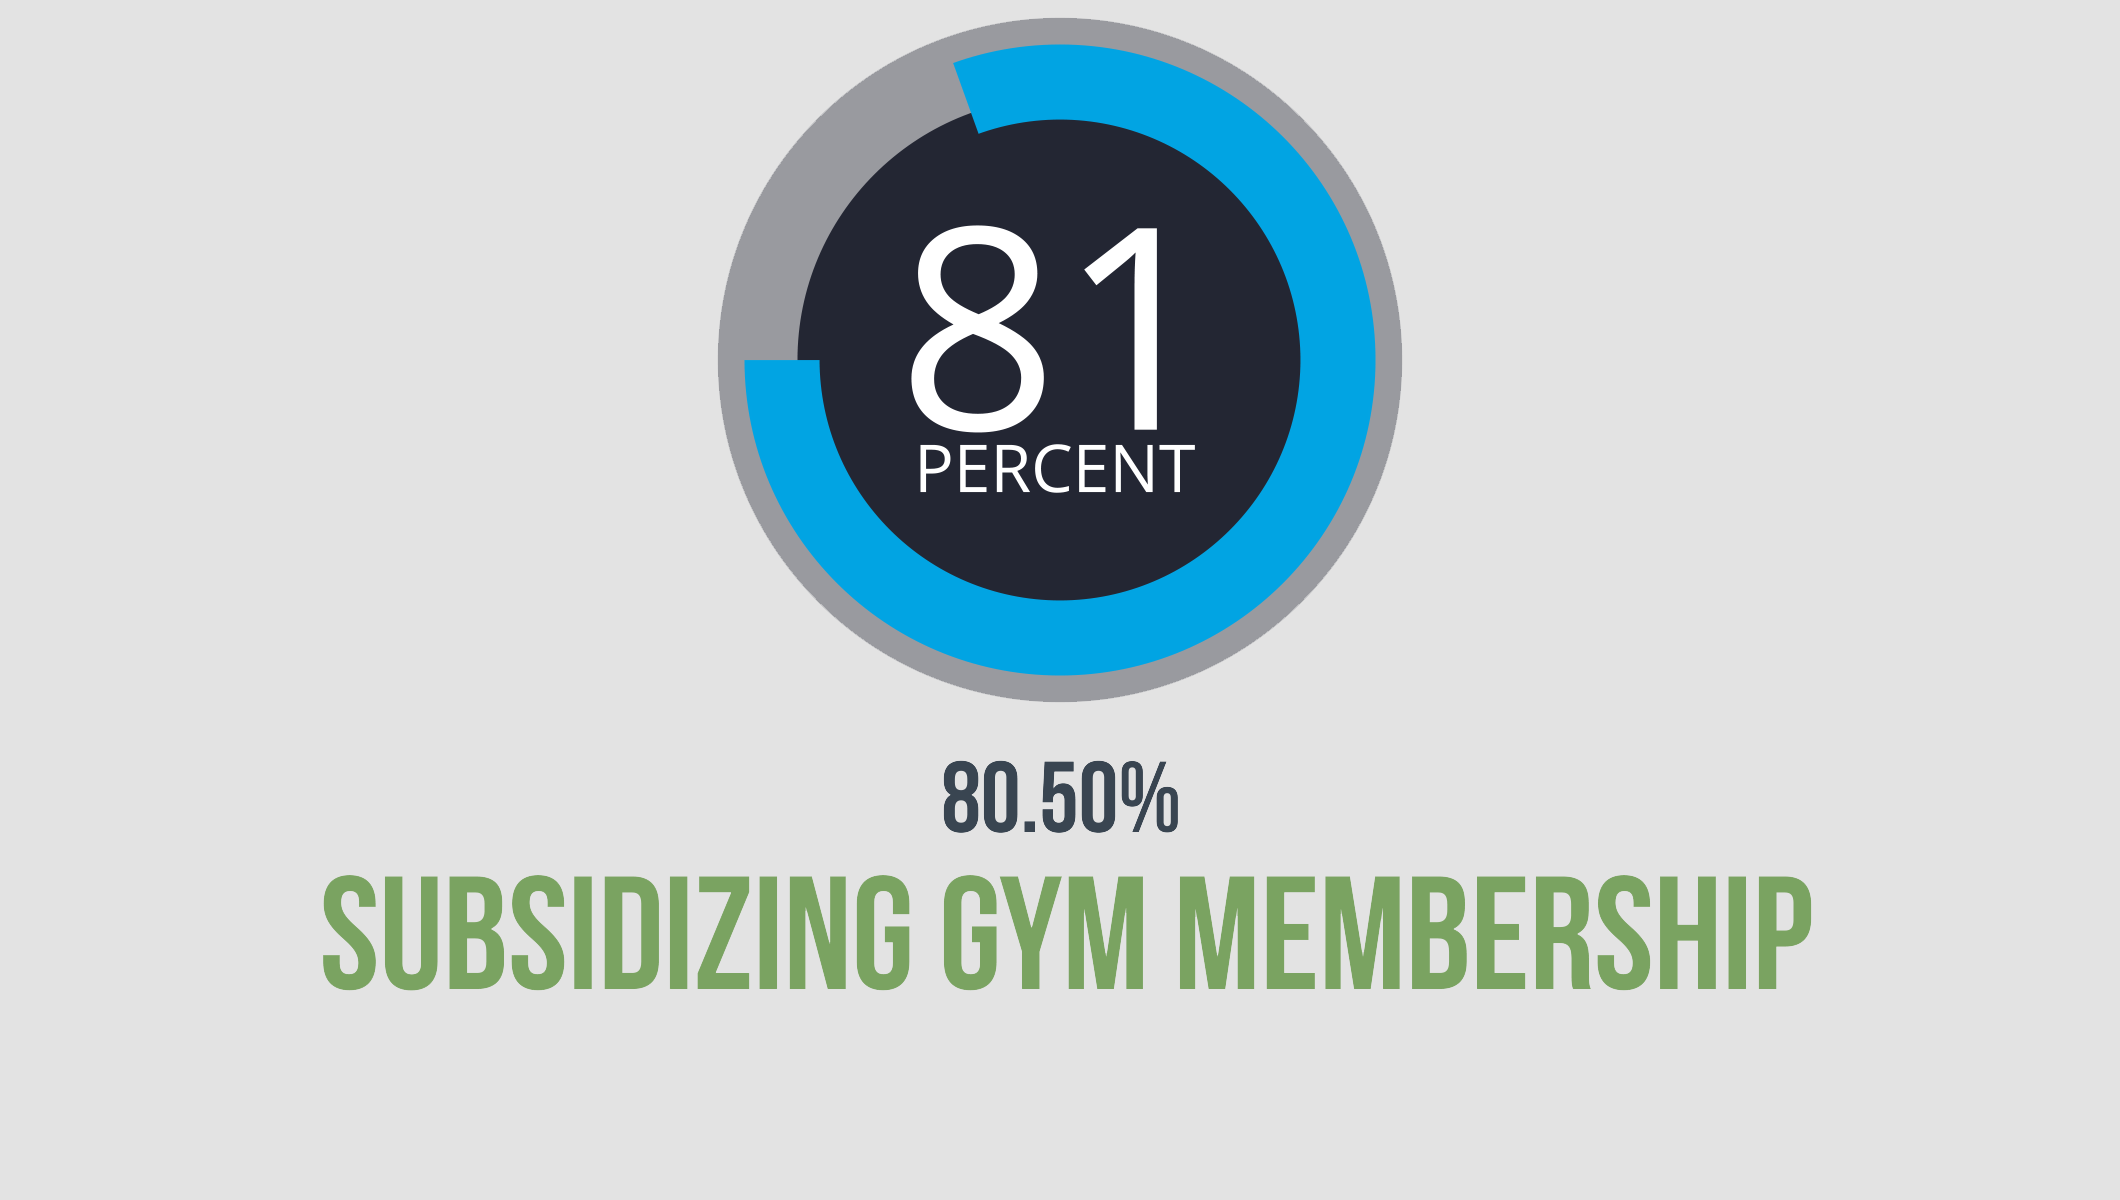 1-Subsidizing gym membership.png